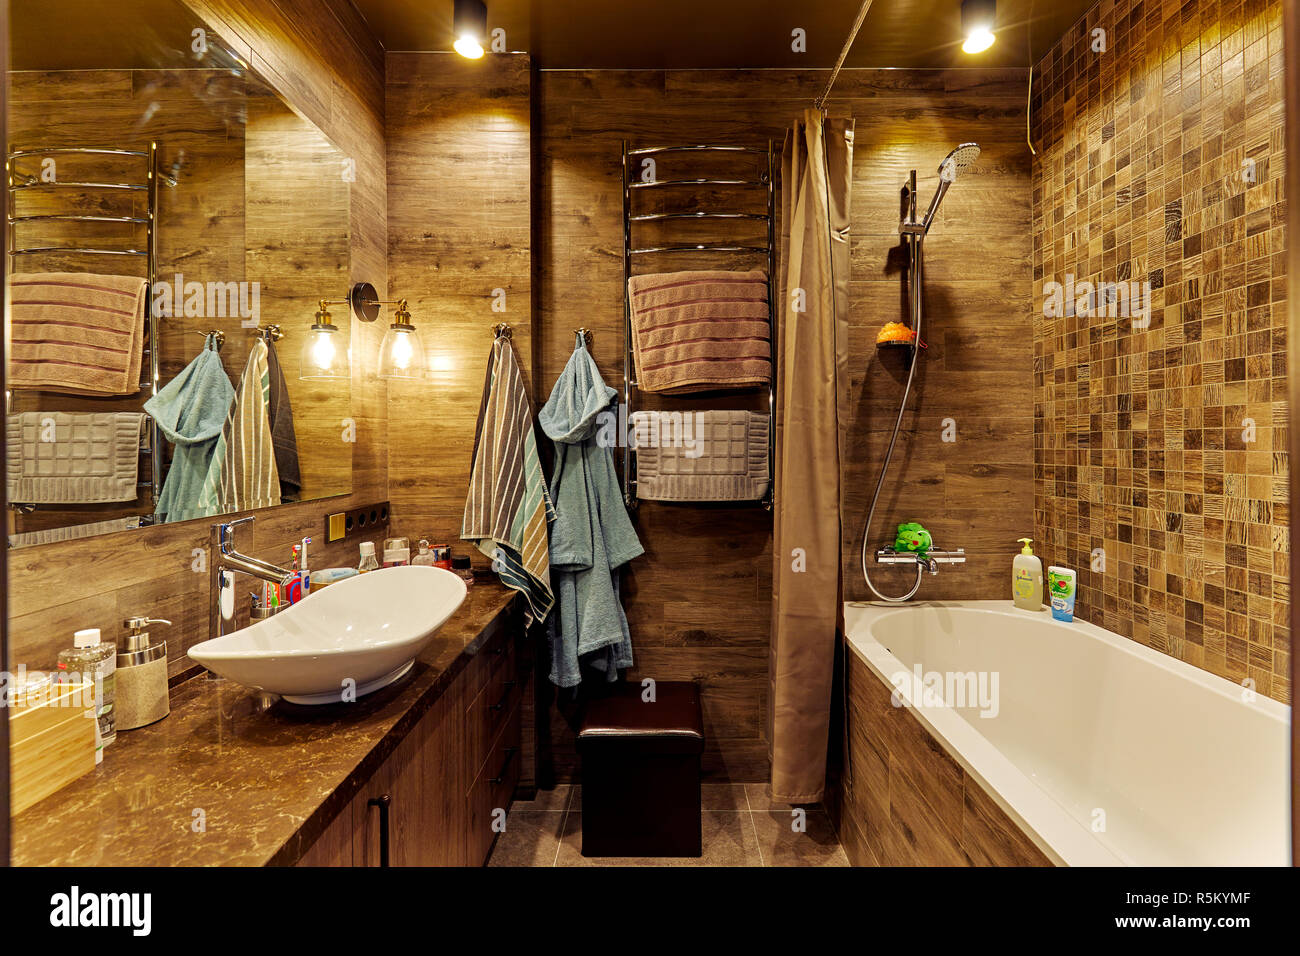 Eindhoven, The Netherlands - December 19, 2018: Interior of a contemporary bathroom with bathtub, in natural earth colors. - Stock Image